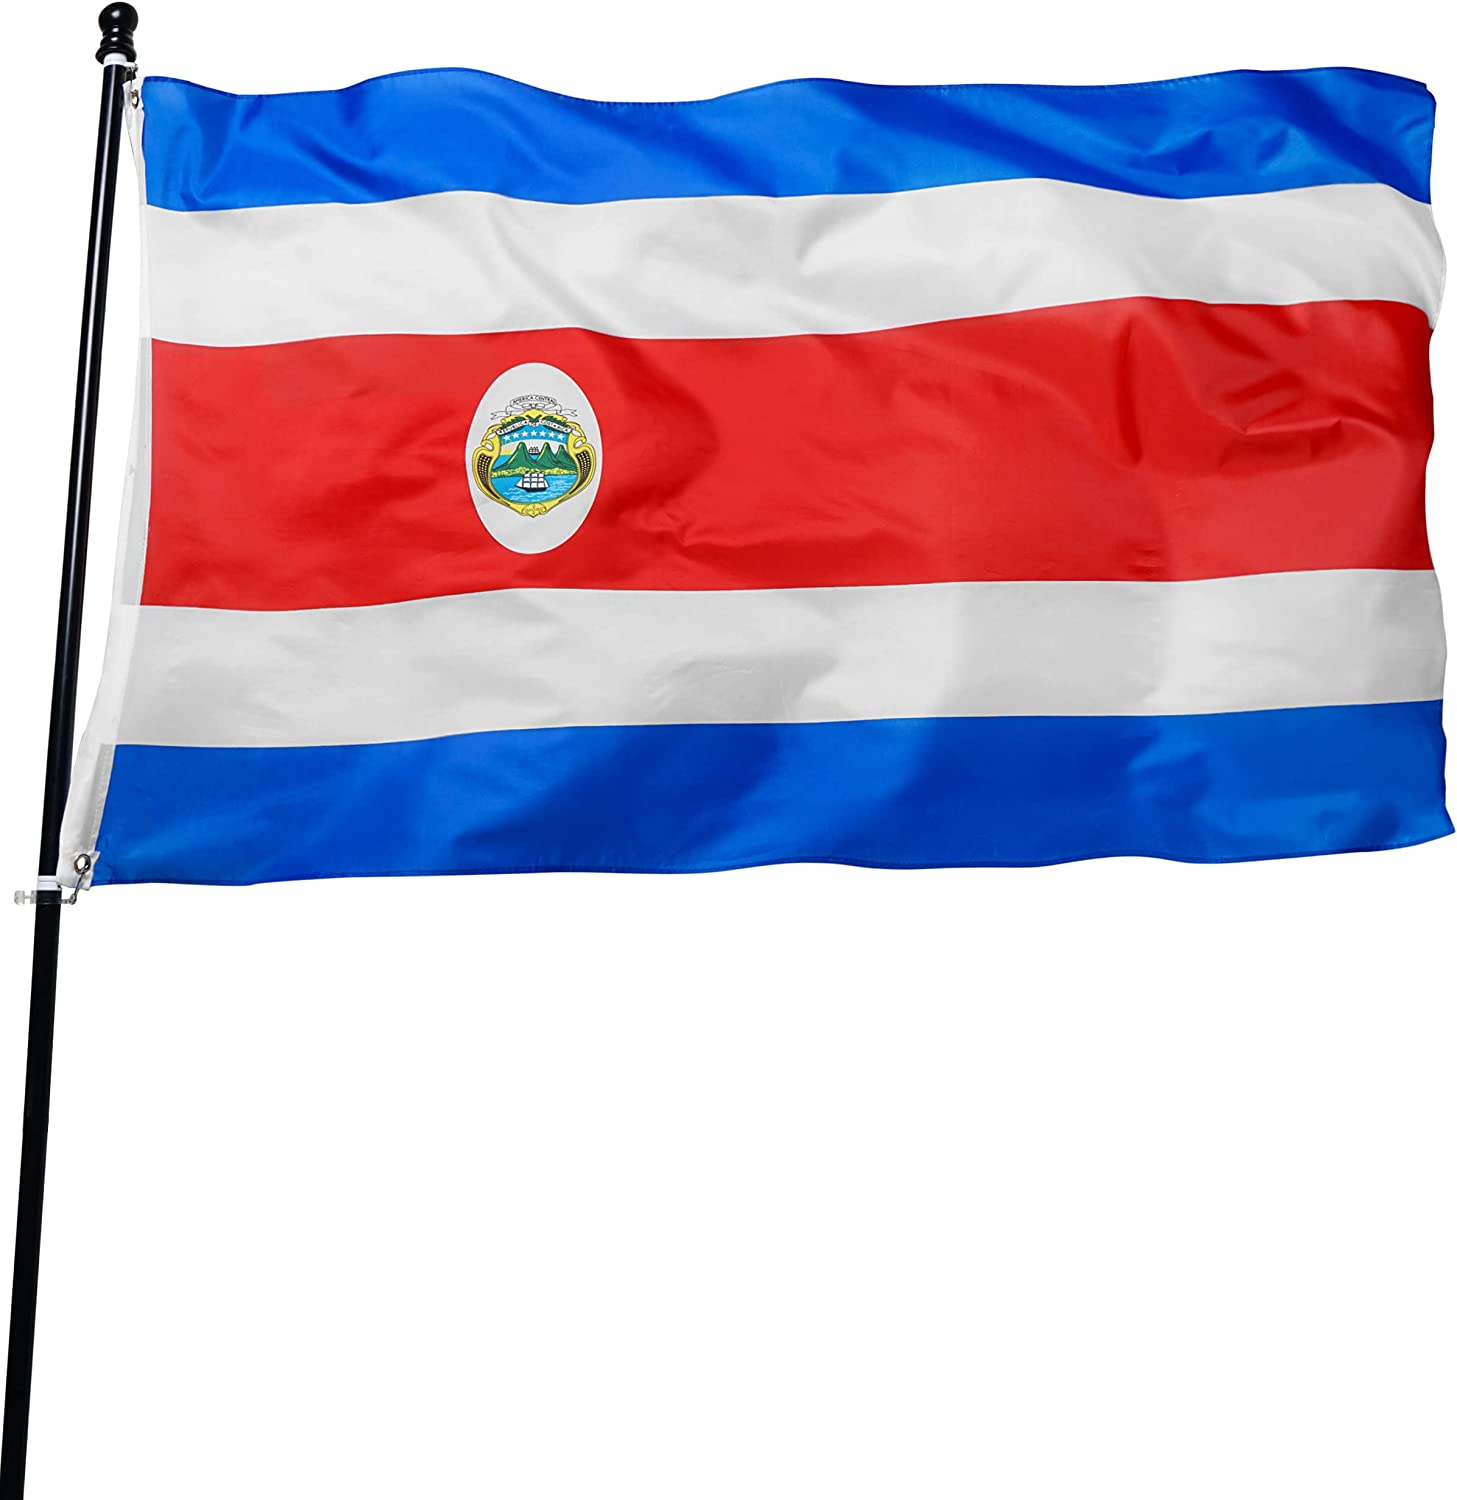 DANF Costa Rica Flag 3x5 Foot Polyester Costa Rican National Flags Polyester with Brass Grommets 3 X 5 Ft